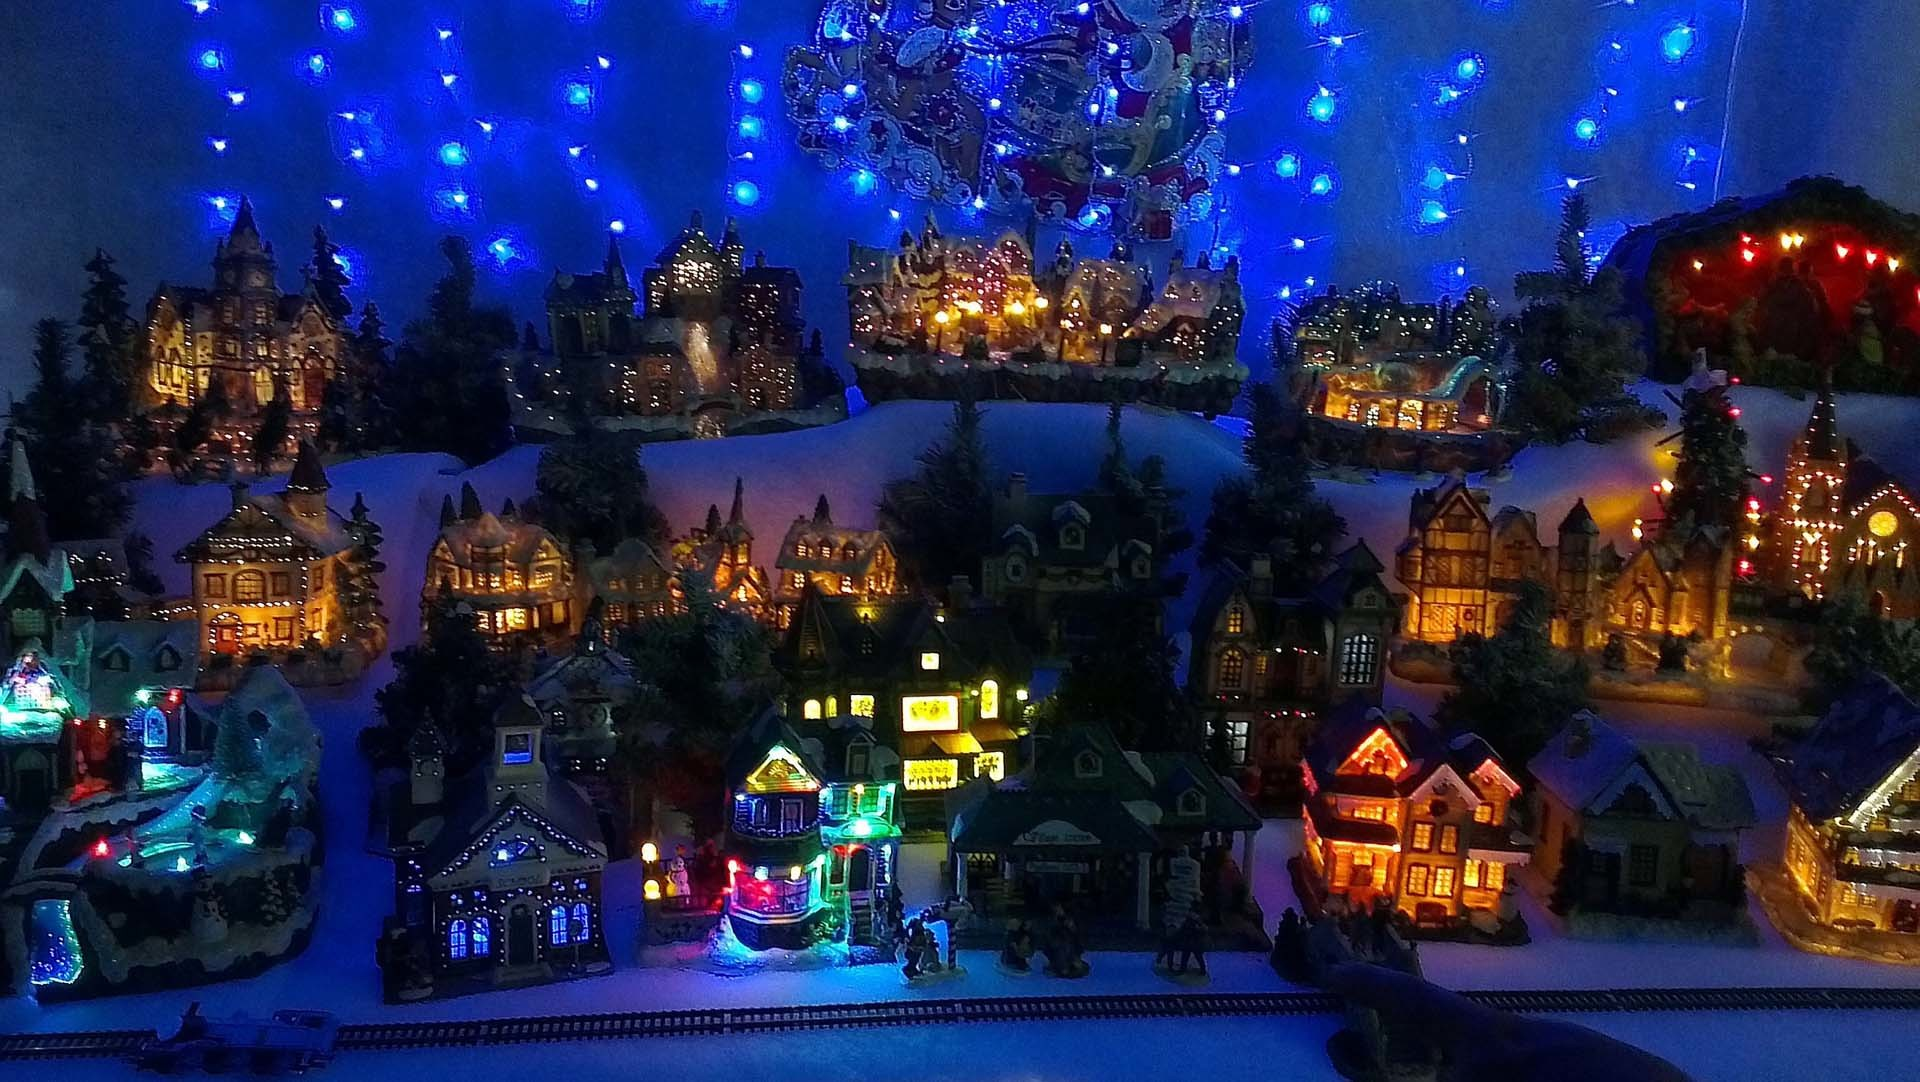 Christmas Village Background 50 Pictures